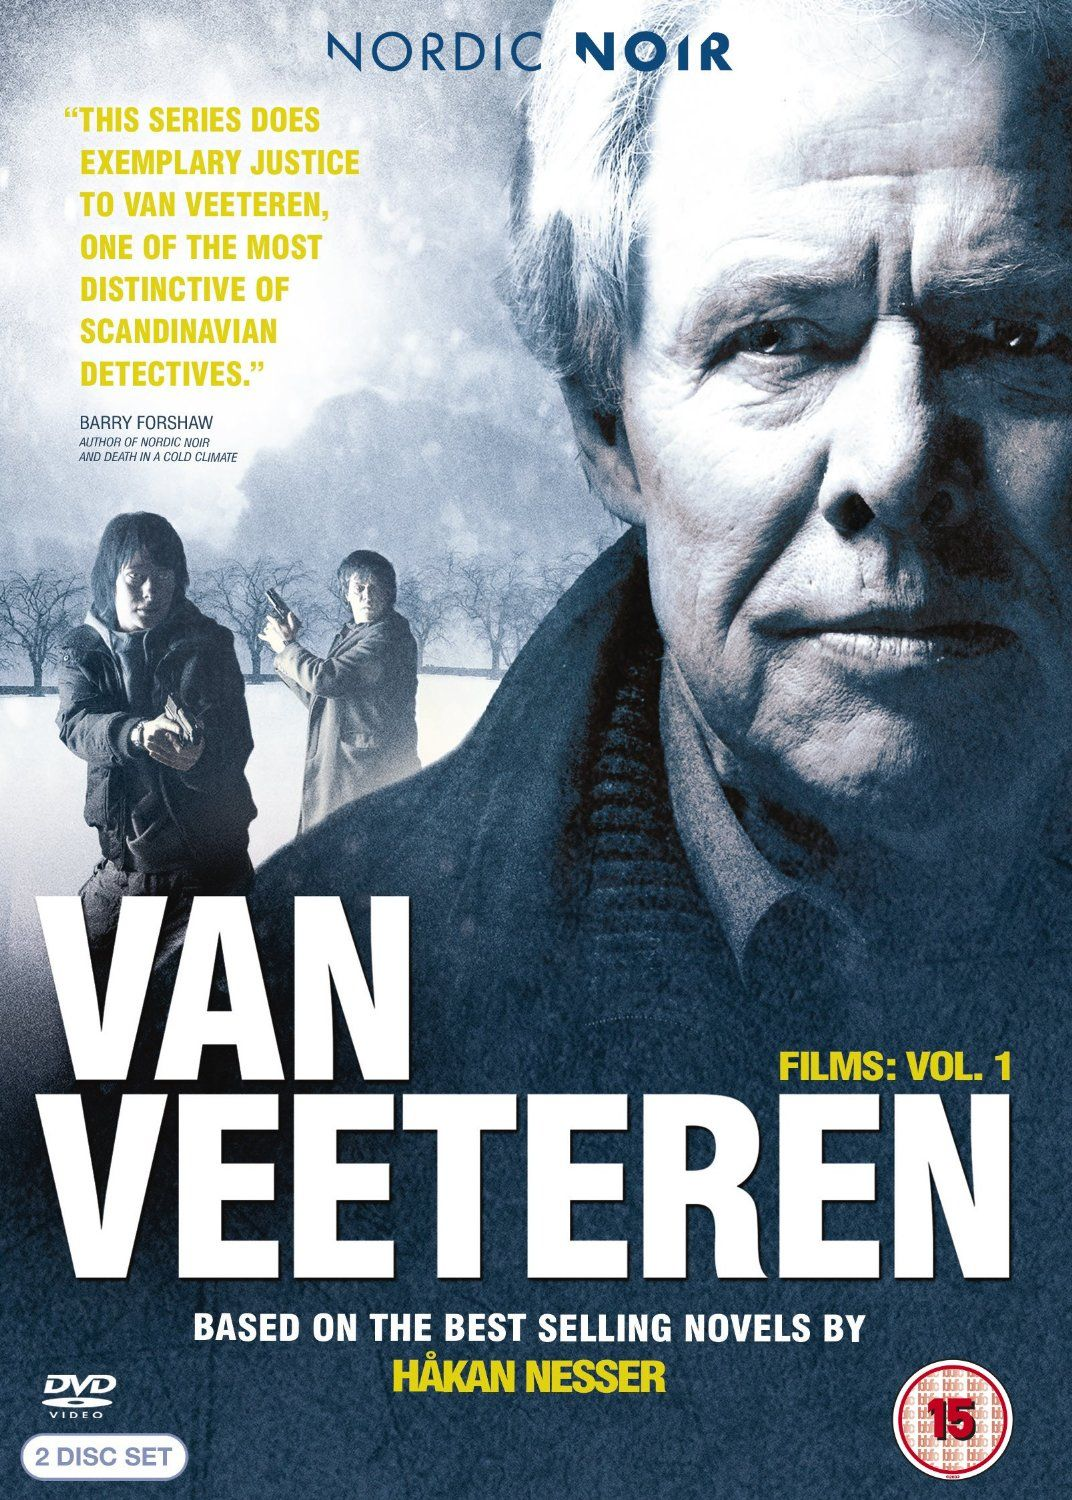 Van Veeteren Jpg 1072 1500 Best Selling Novels Mystery Thriller Film